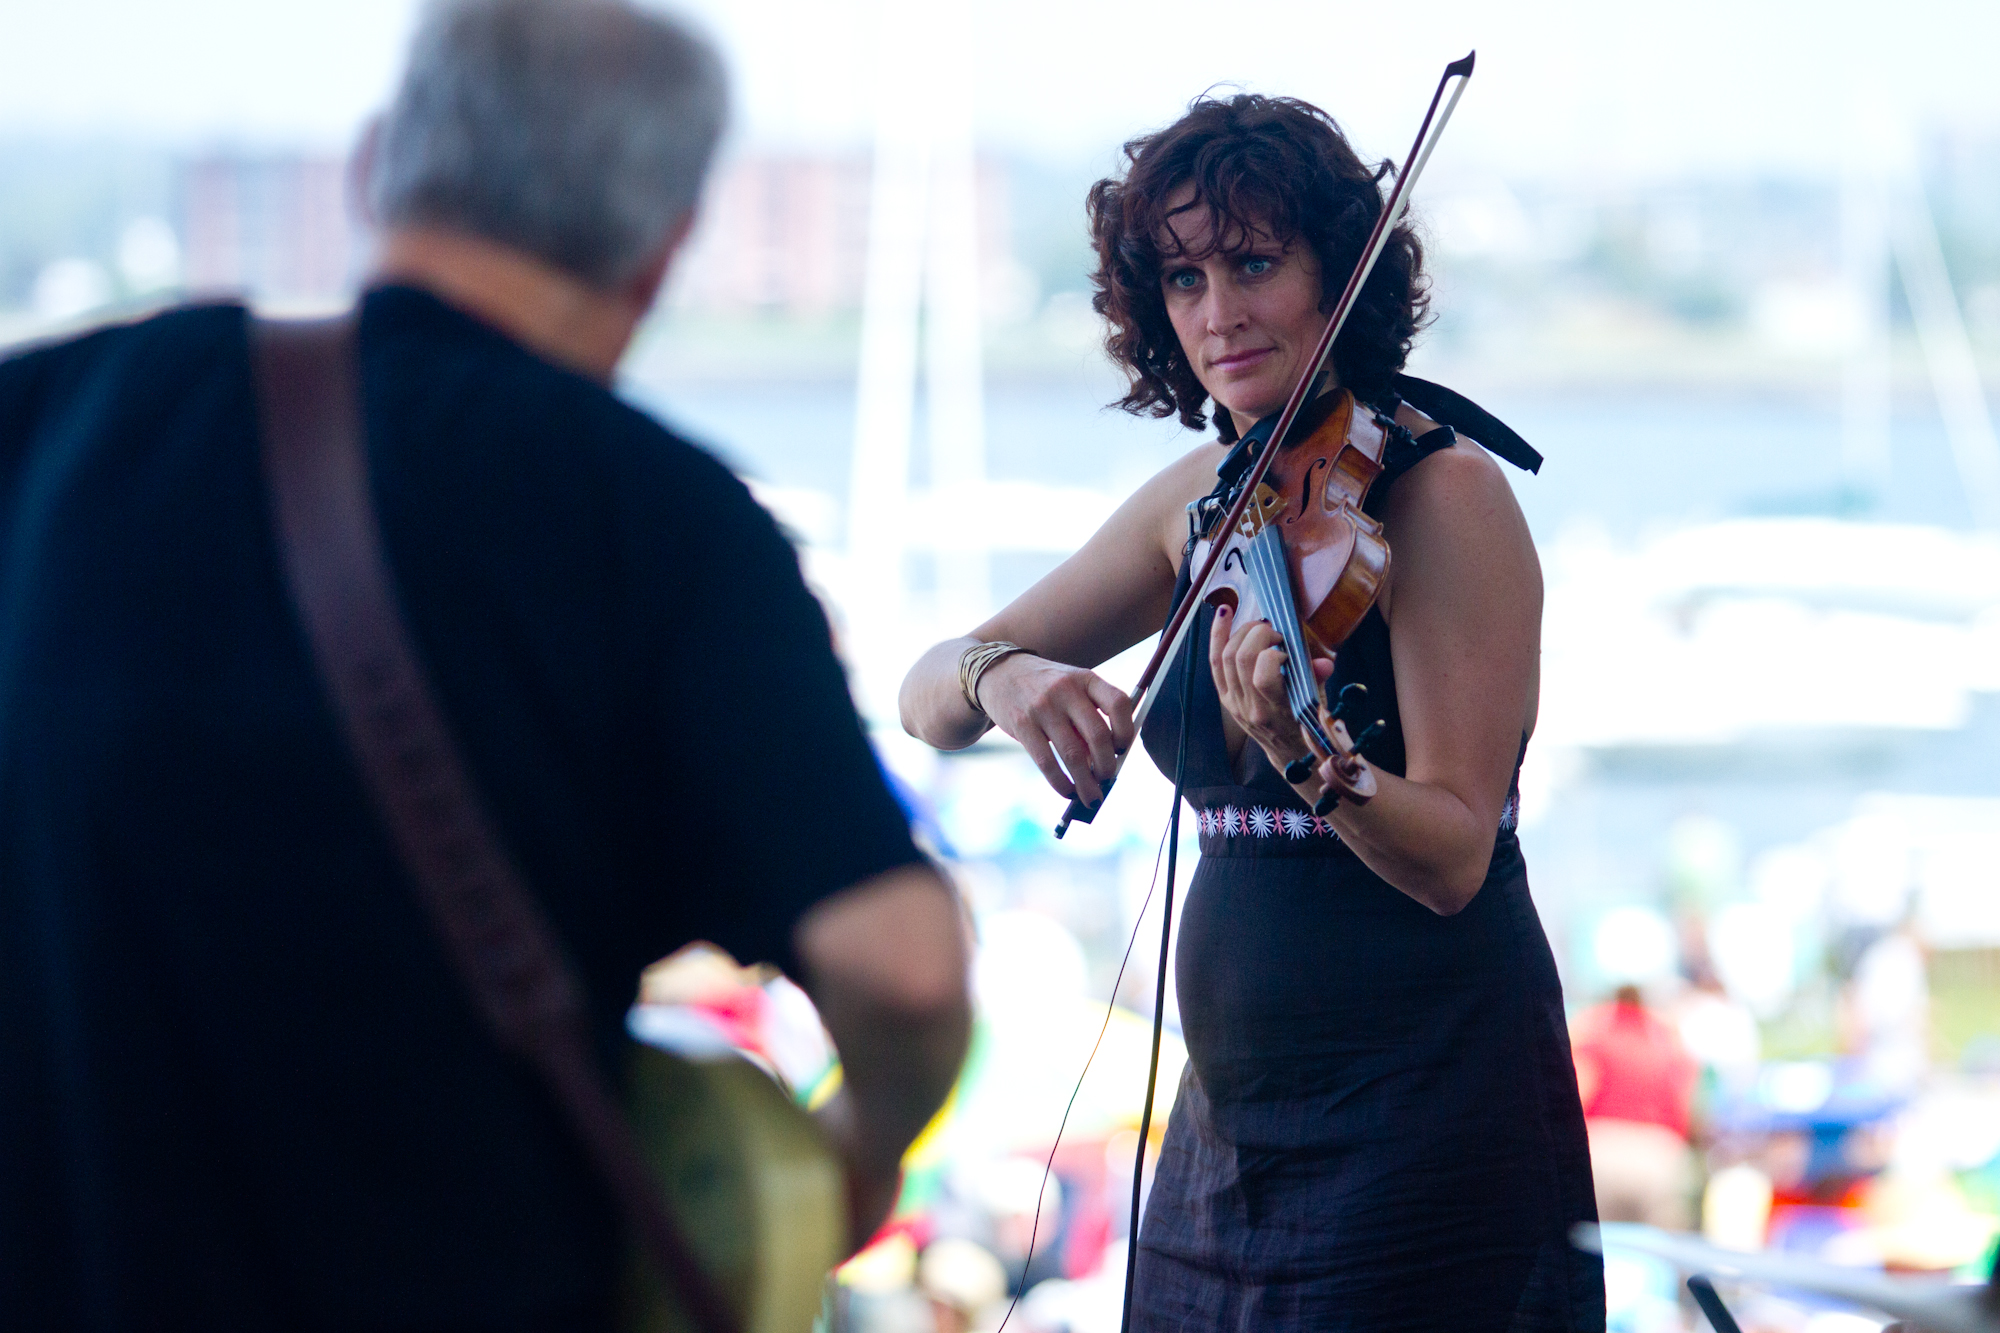 Jenny Schienman leaned into her violin during the Bill Frisell Plays John Lennon set.